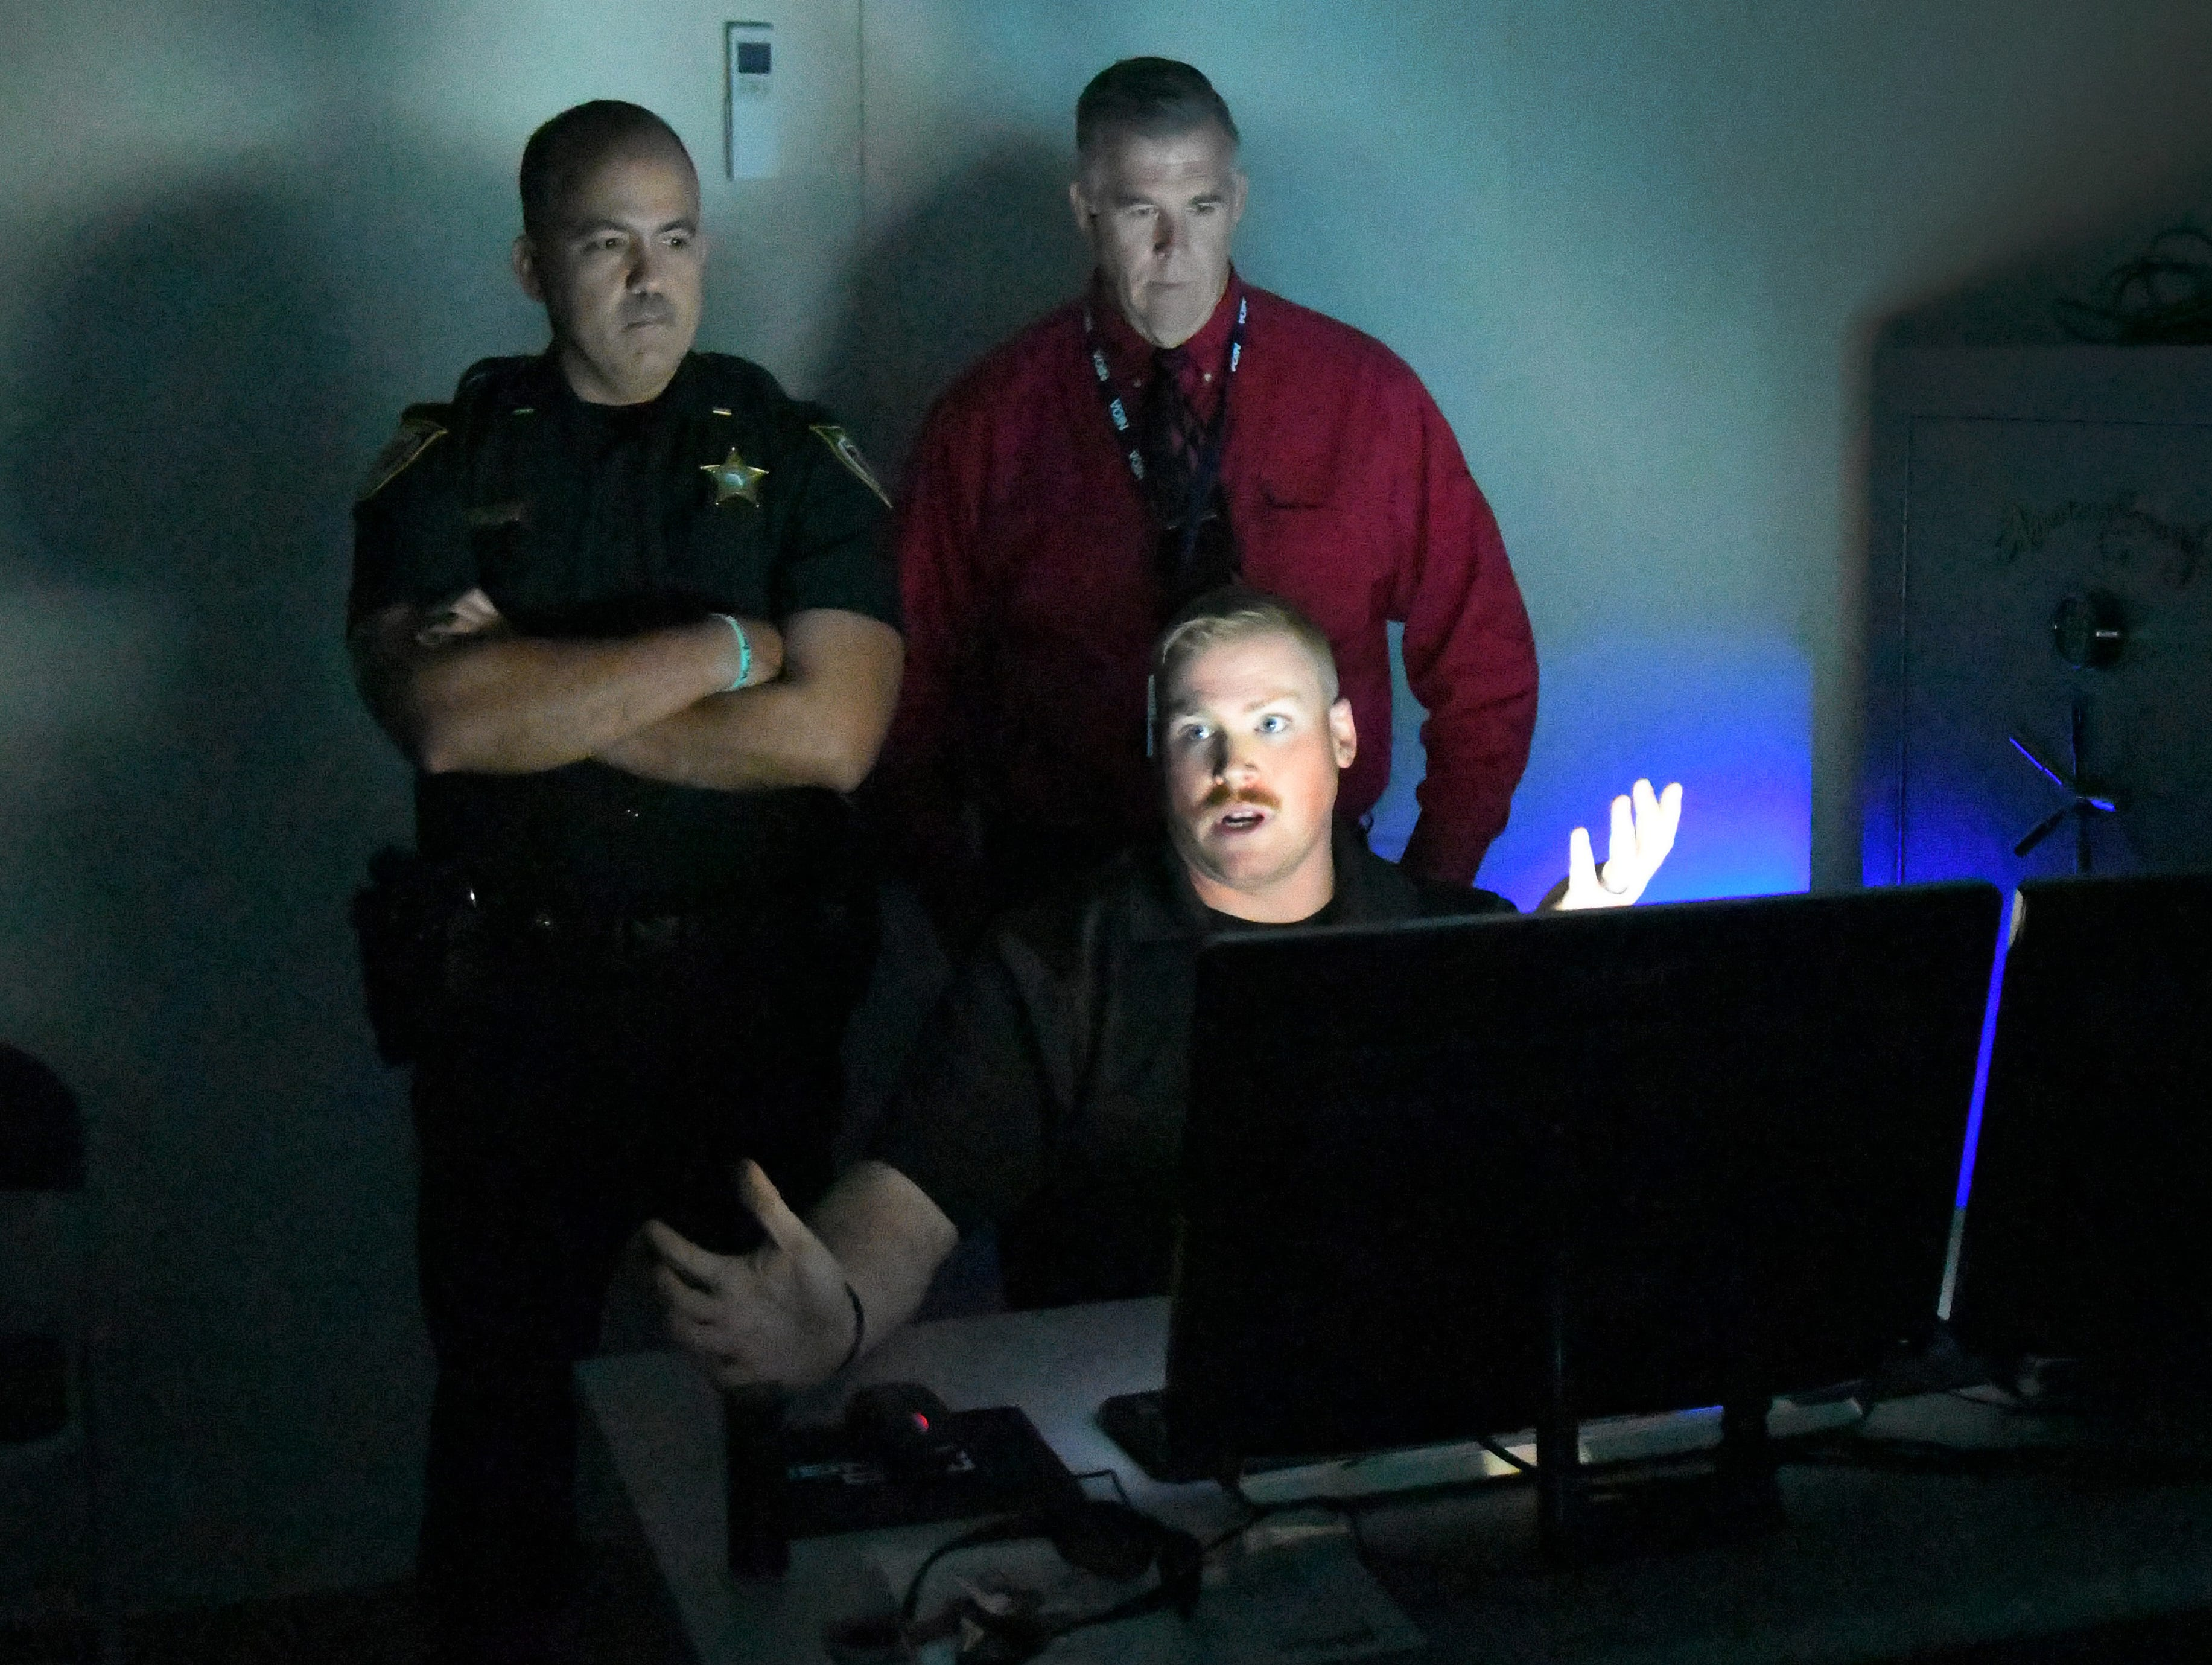 Corporal Jeremy Flake, at the controls, describes the workings of the the MILO Range 300 Theater, a high tech interactive training system, set up at a Brevard County Sheriff's Office facility in Sharpes. It is part of a program to help  train school guardians. Those using the MILO Range are armed with simulated handguns, and immersed in a 300 degree video simulating an active shooting situation in a school, office, and other locations.